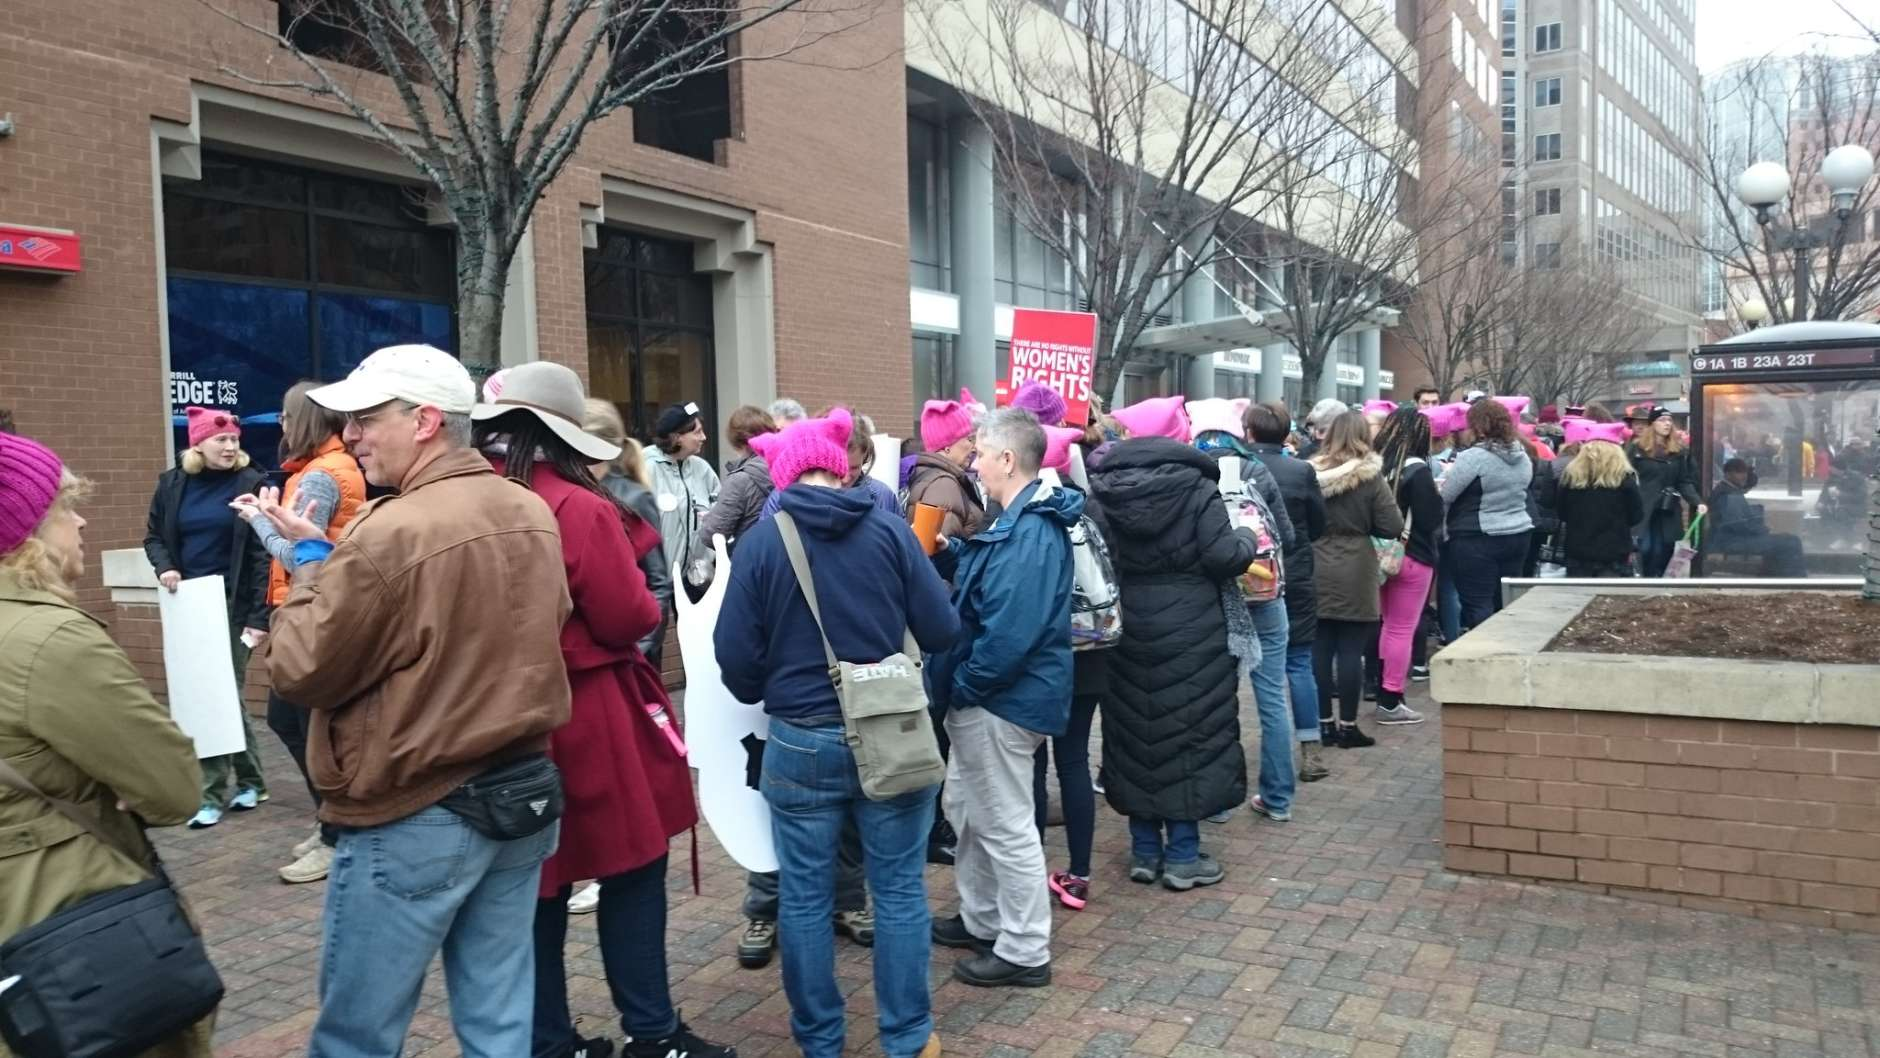 The line to get into the Ballston Metro station to make it to the Women's March on Washington in D.C. Saturday morning, Jan. 21, 2017. (WTOP/Dennis Foley)